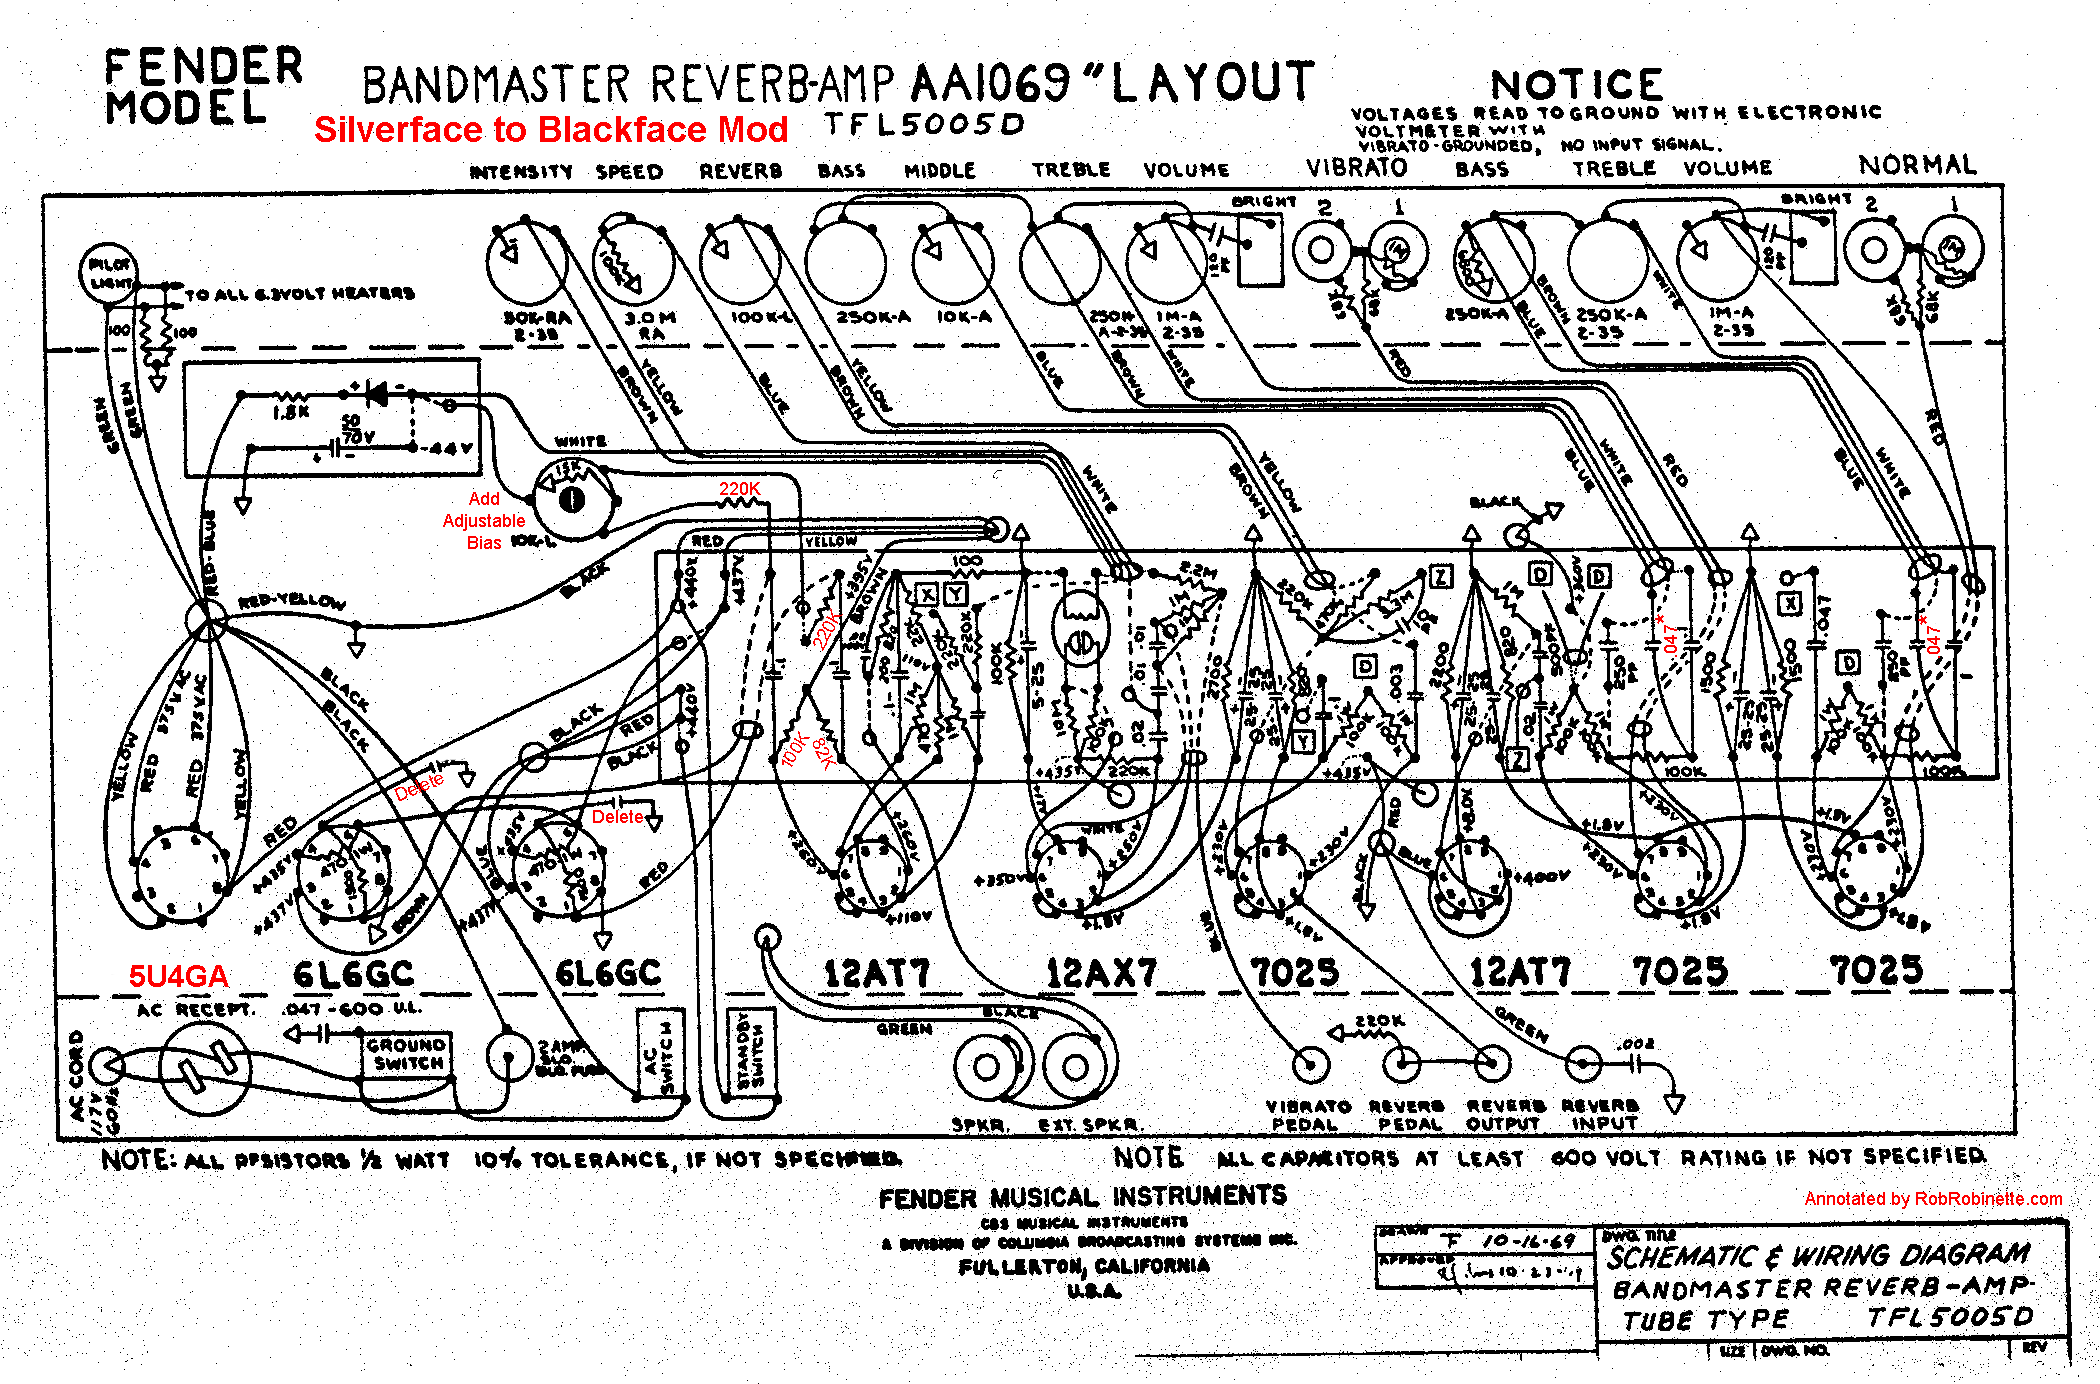 silverface mods  at Fender 1973 Super Reverb Spekeaker Wiring Diagram